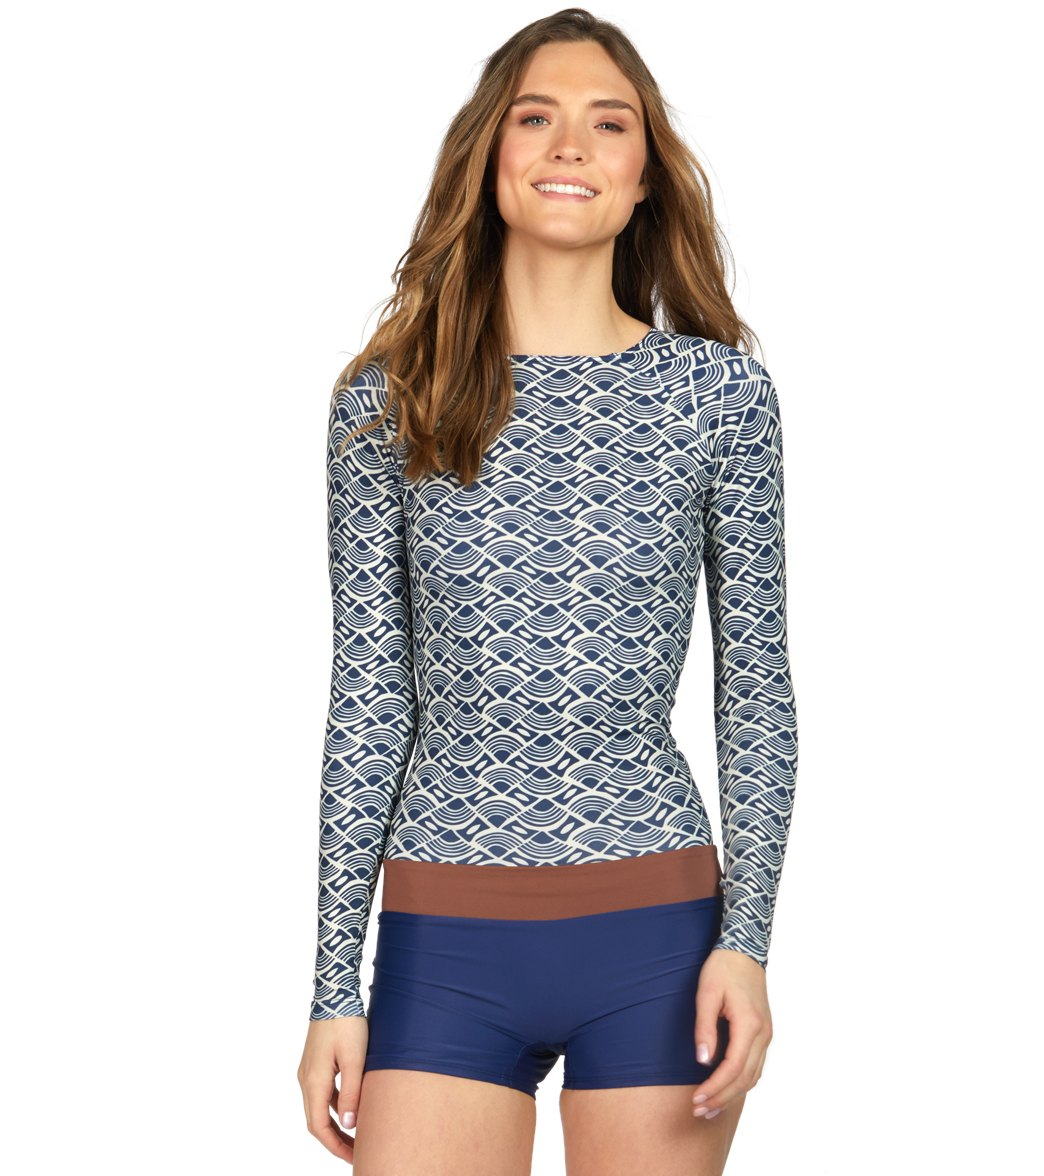 5eb72b6f2a Seea Swami s Boro High Neck Long Sleeve One Piece Swimsuit at  SwimOutlet.com - Free Shipping